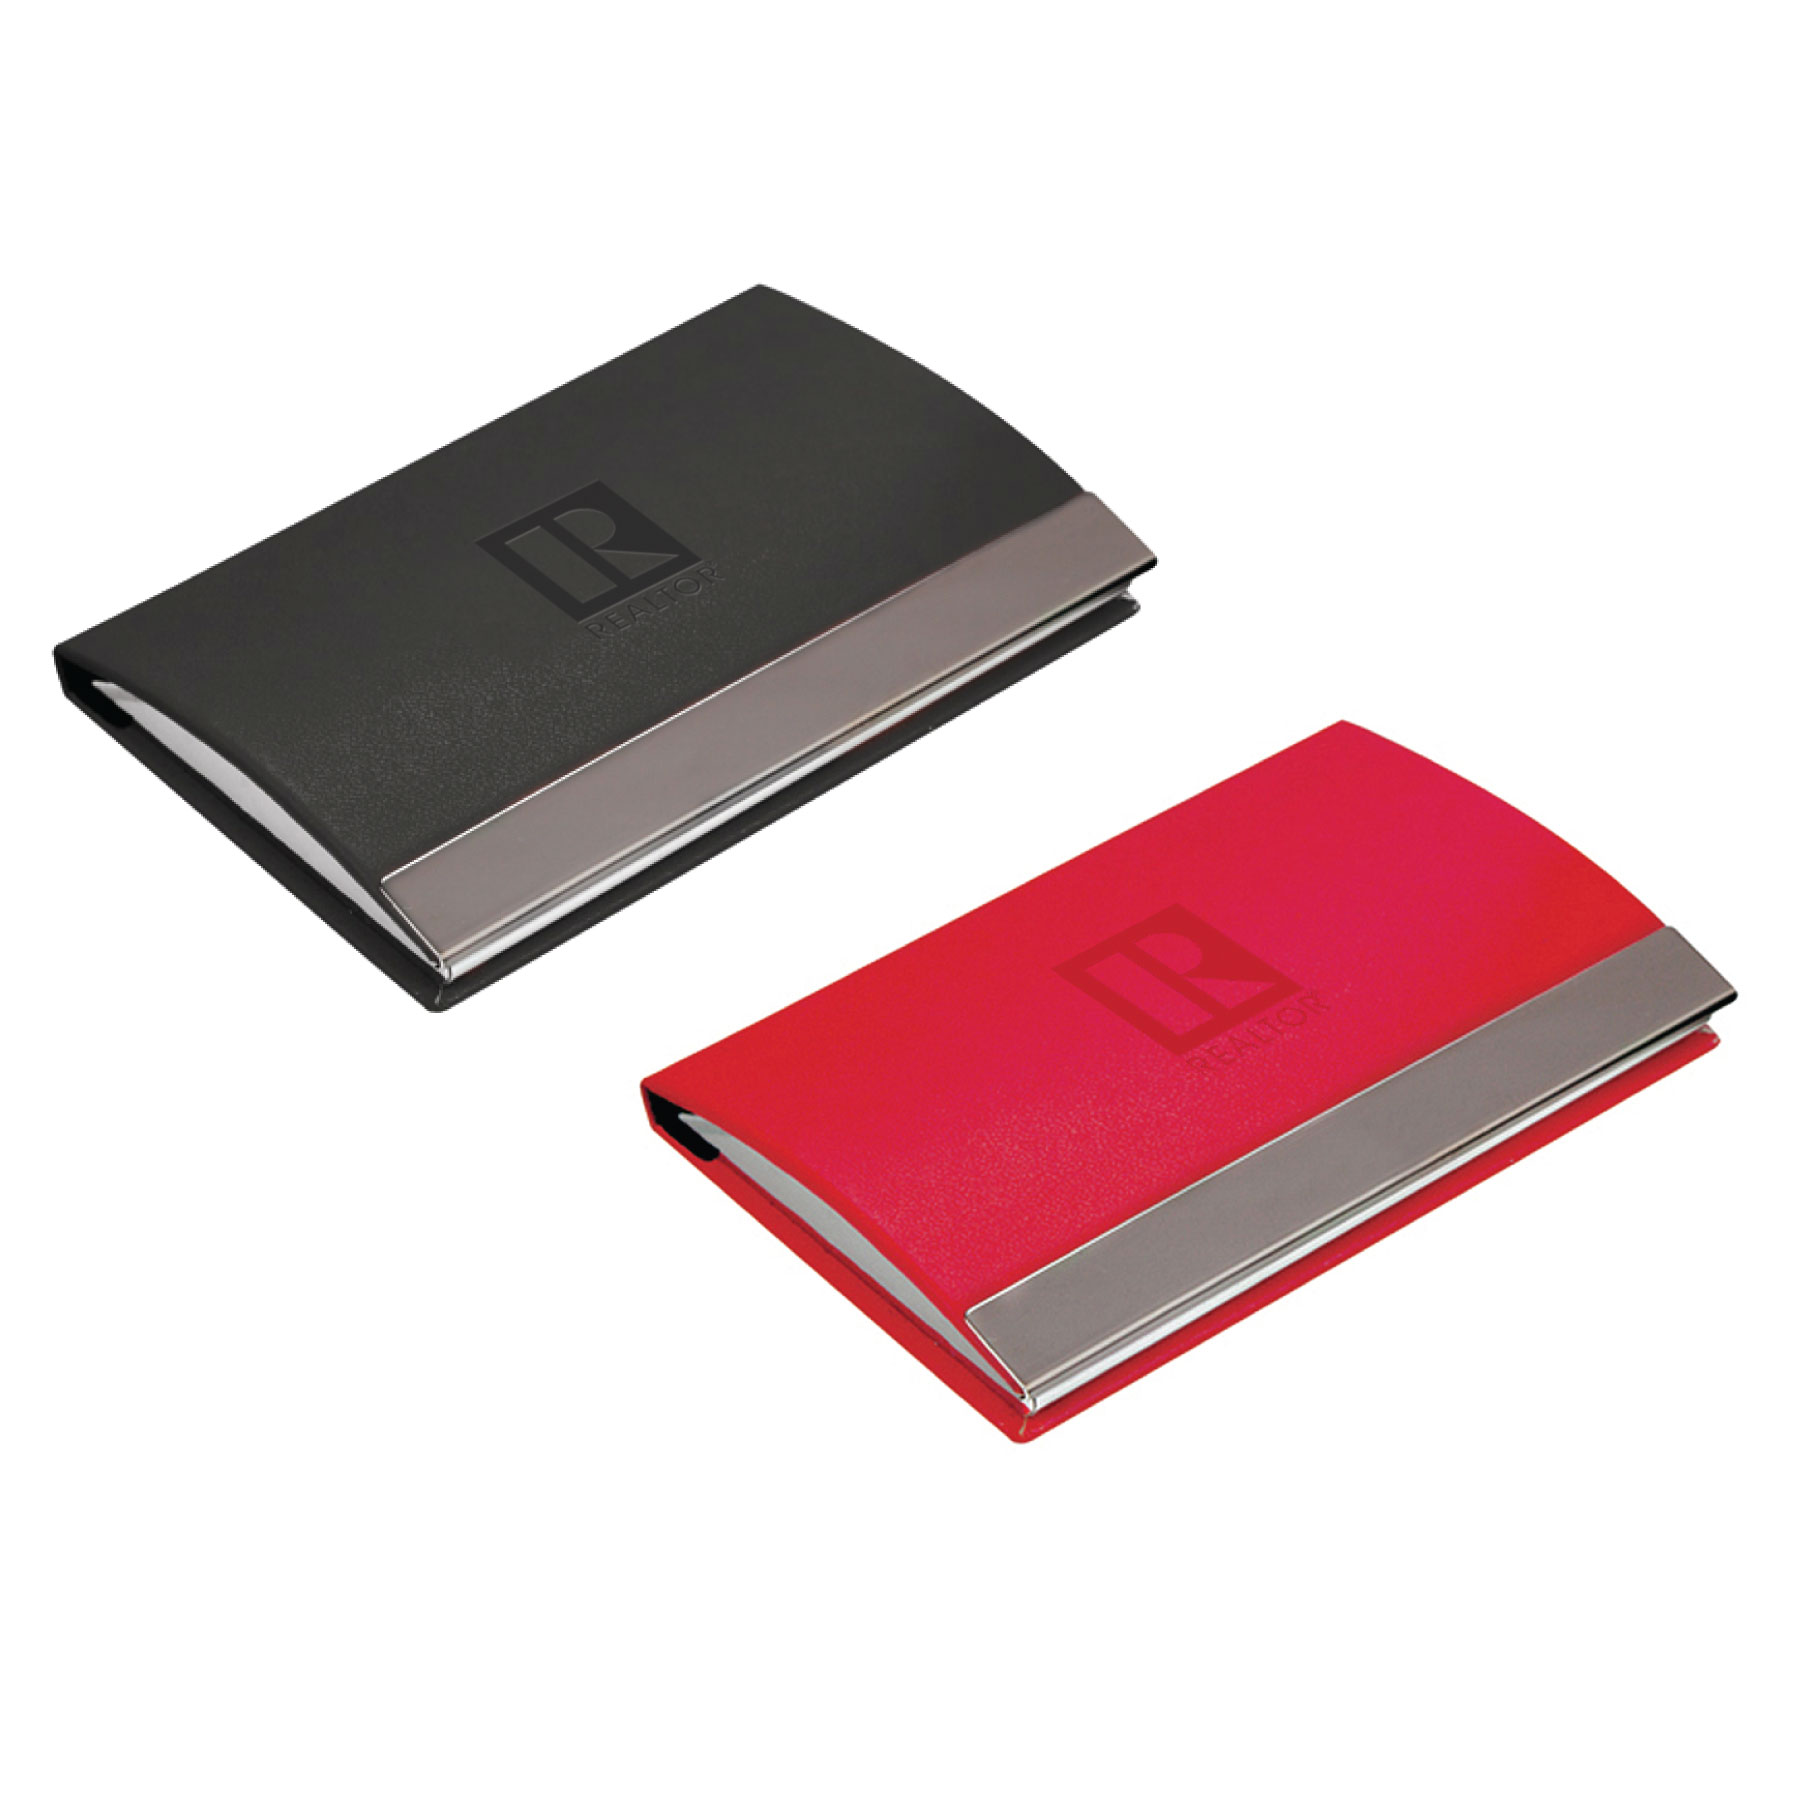 Curved Business Card Case Businesses,Cards,Cases,Holders,Curves,Rounded,Business,Buisness,busines